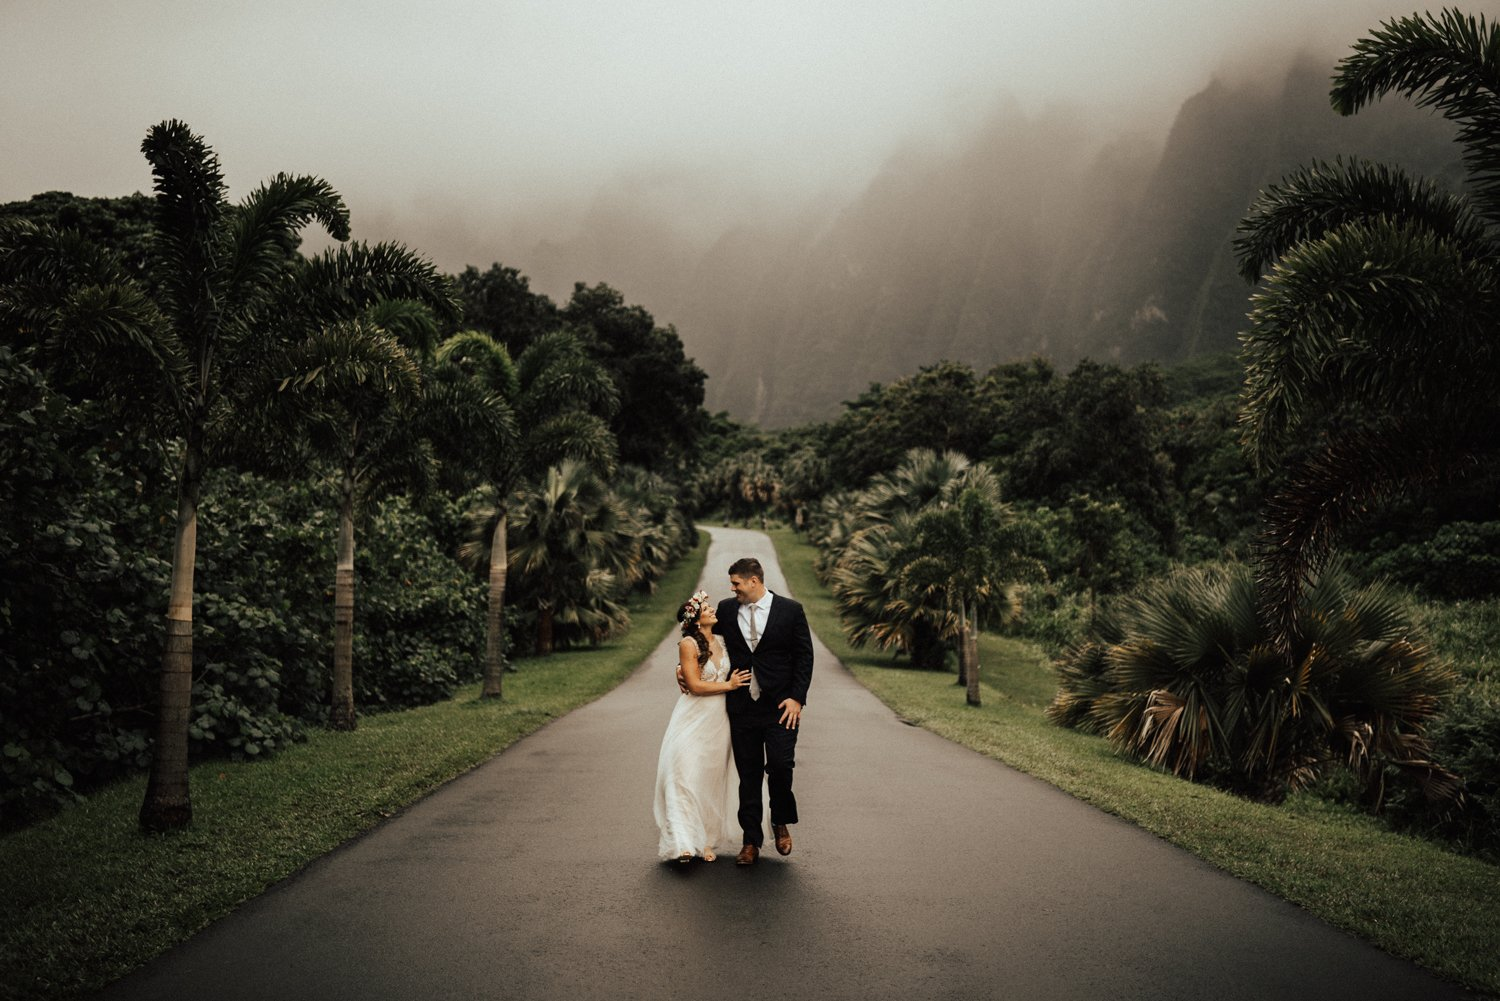 Hawaii Elopement Guide - With so many possibilities, we help you find the perfect spot & vendors for your big day :)